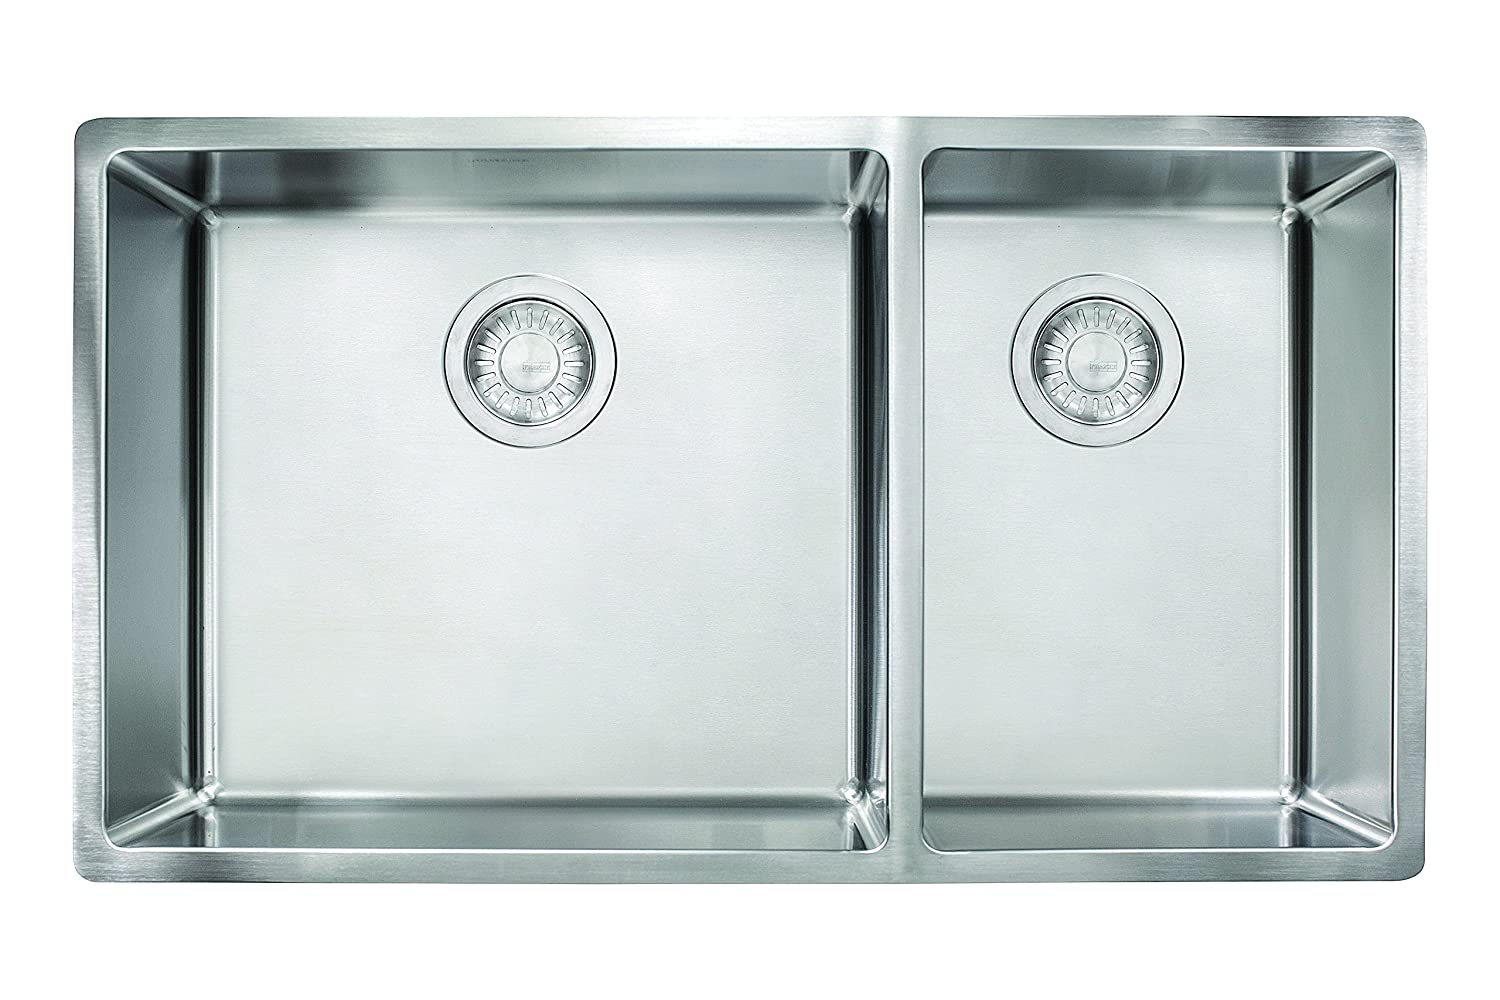 Franke CUX160 Cube 18G Stainless Steel Double Bowl Kitchen Sink      Amazon.com